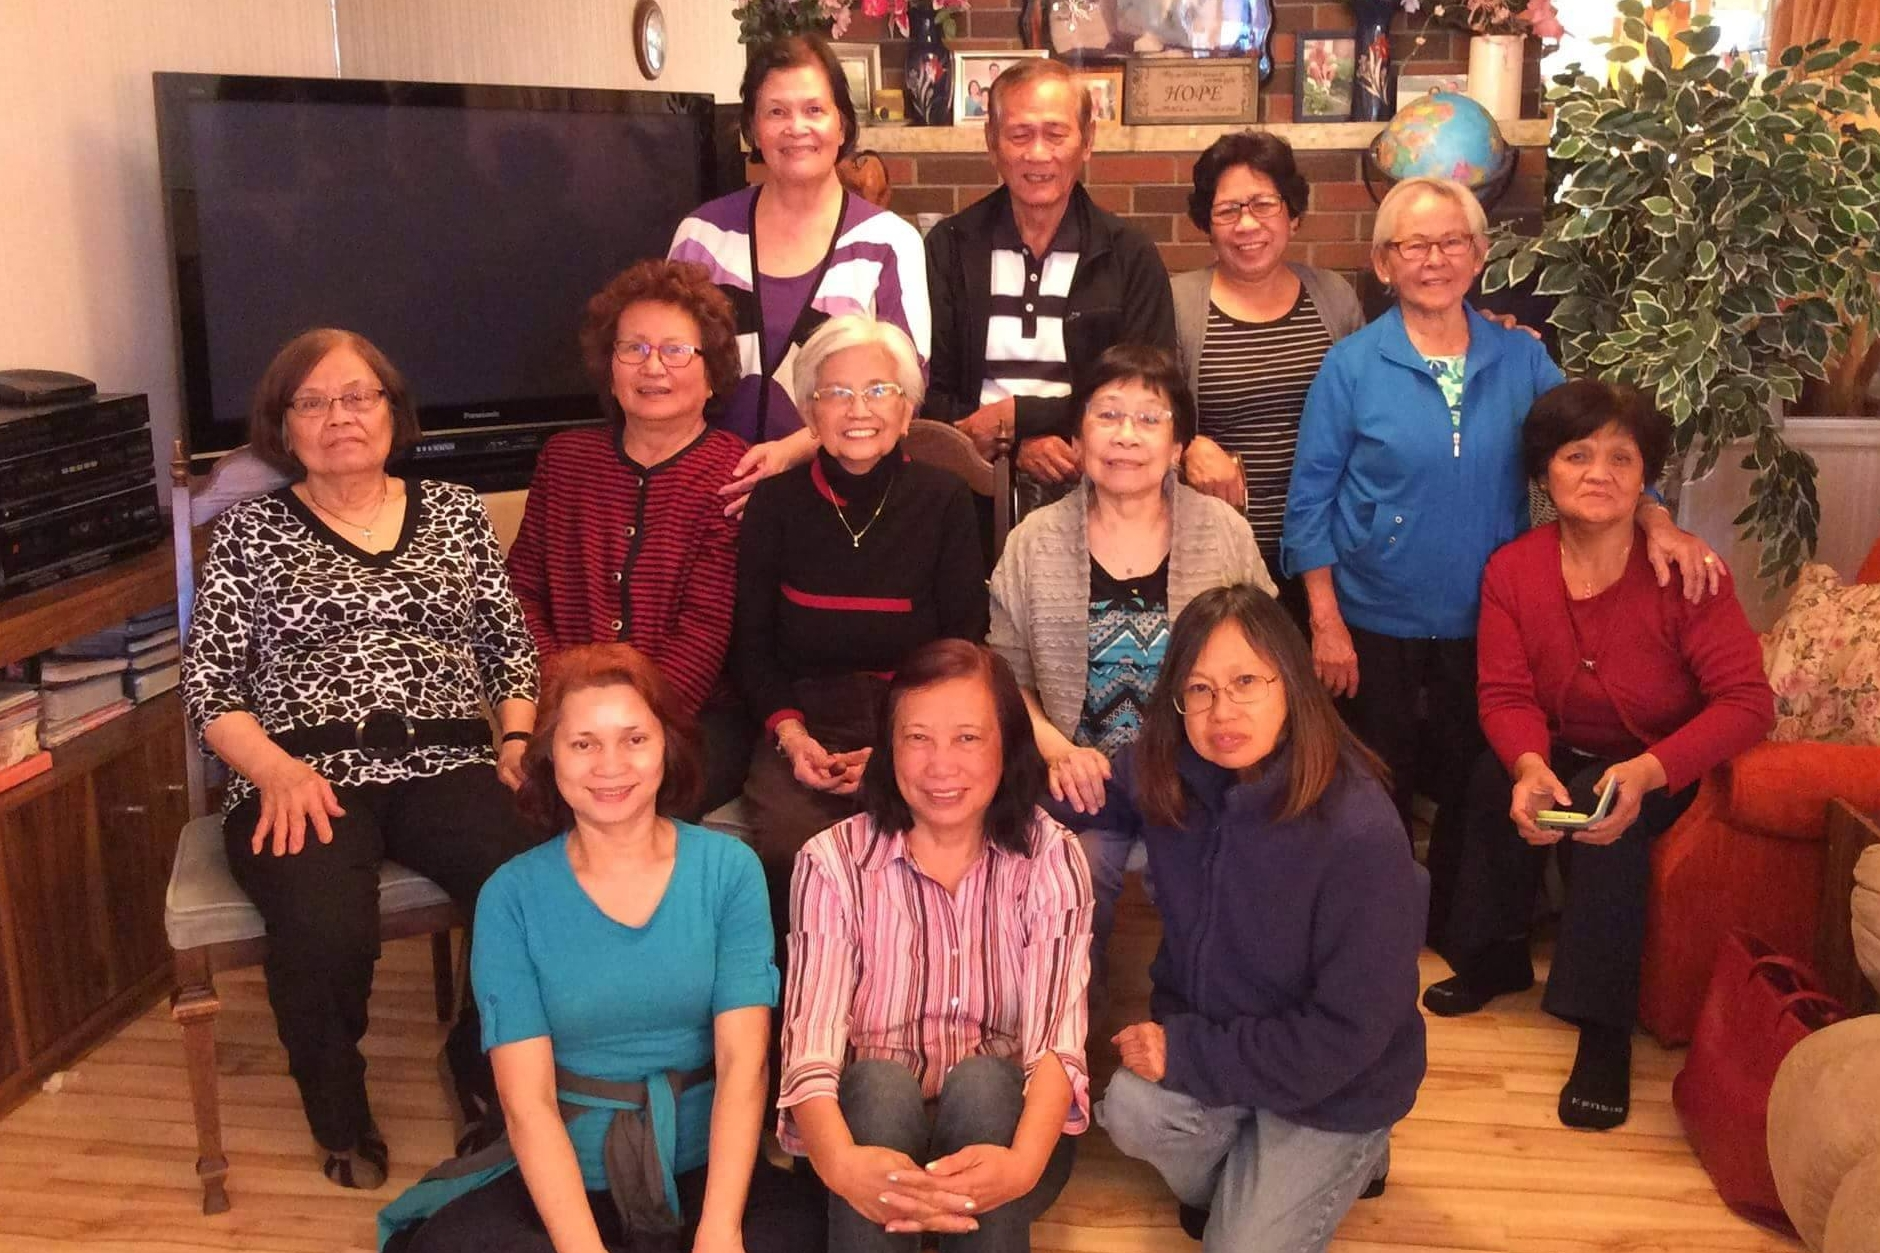 Seniors' Care Group   Every other Saturday Contact: Lolit Gallo / Lota Aquino 780-489-0626 / 780-490-5258